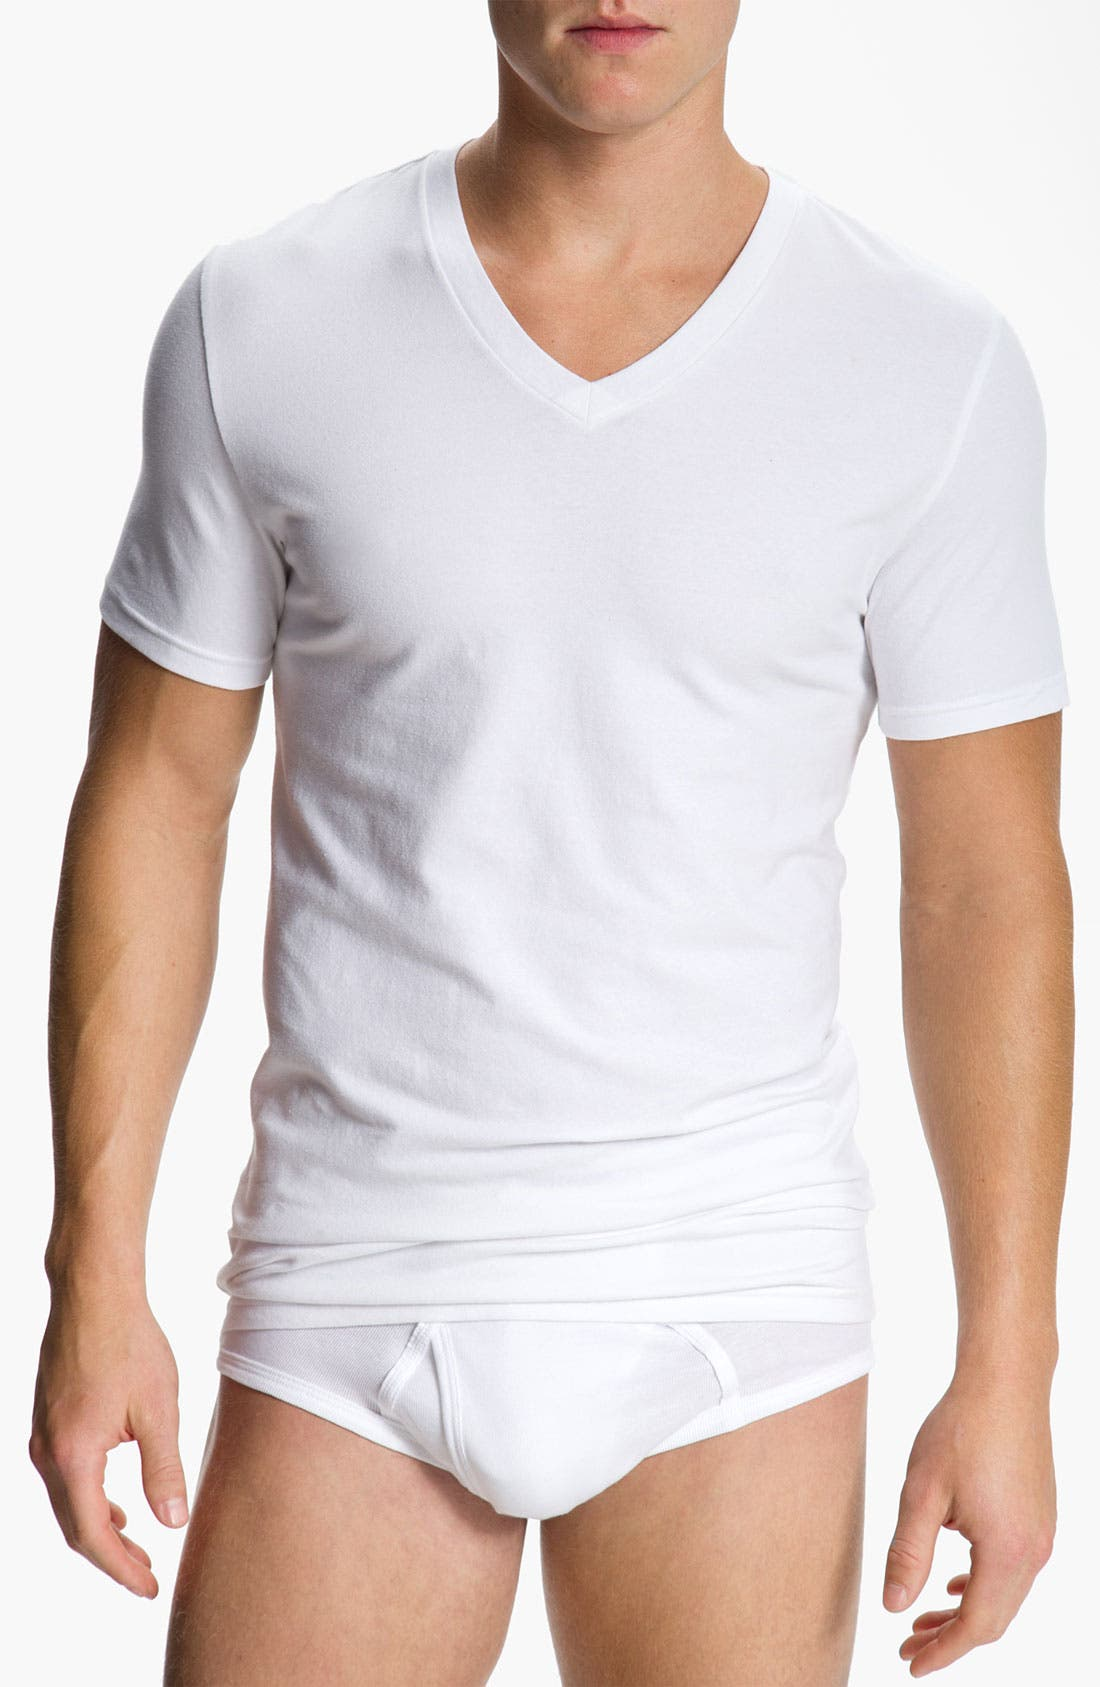 Alternate Image 1 Selected - Nordstrom Men's Shop 4-Pack Trim Fit V-Neck T-Shirt